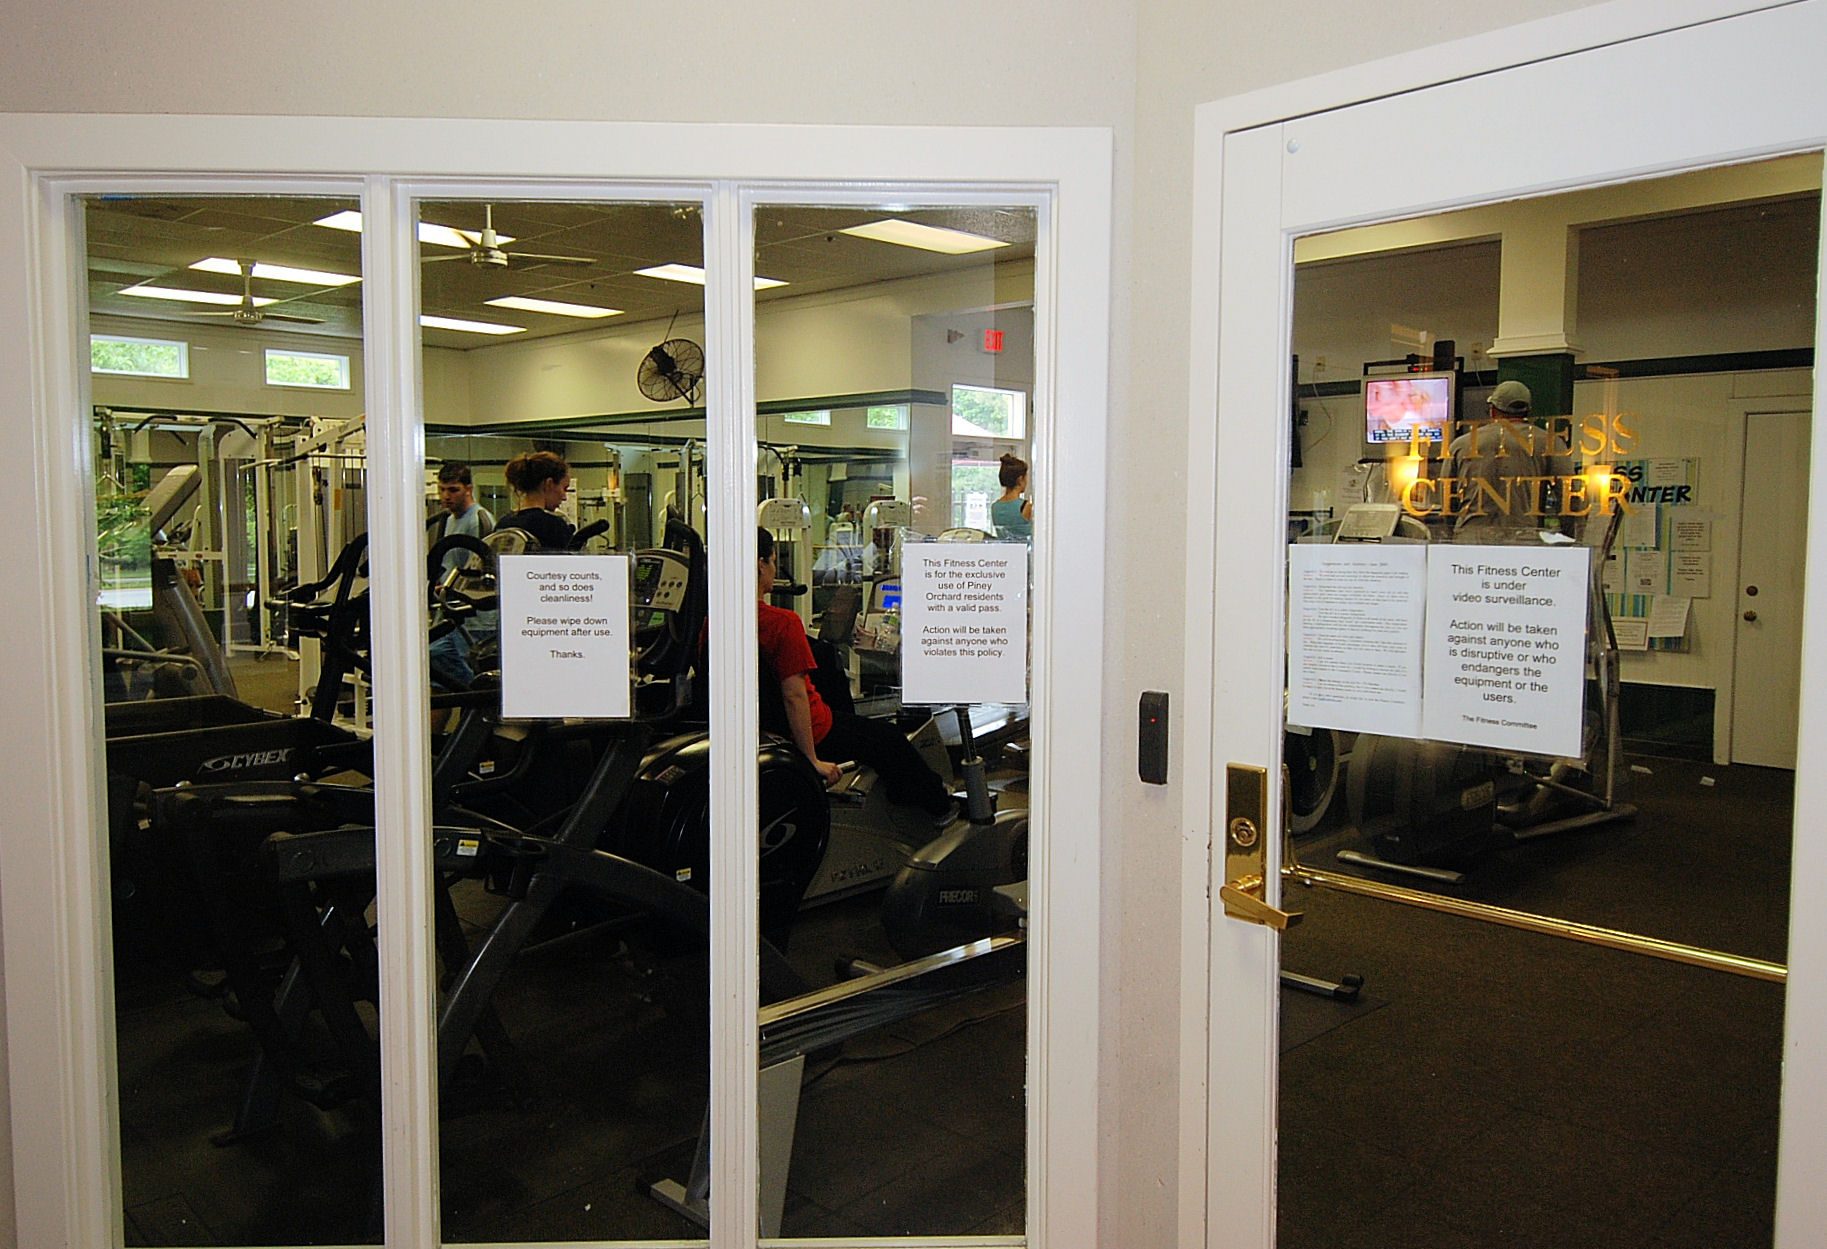 PIney Orchard fitness center